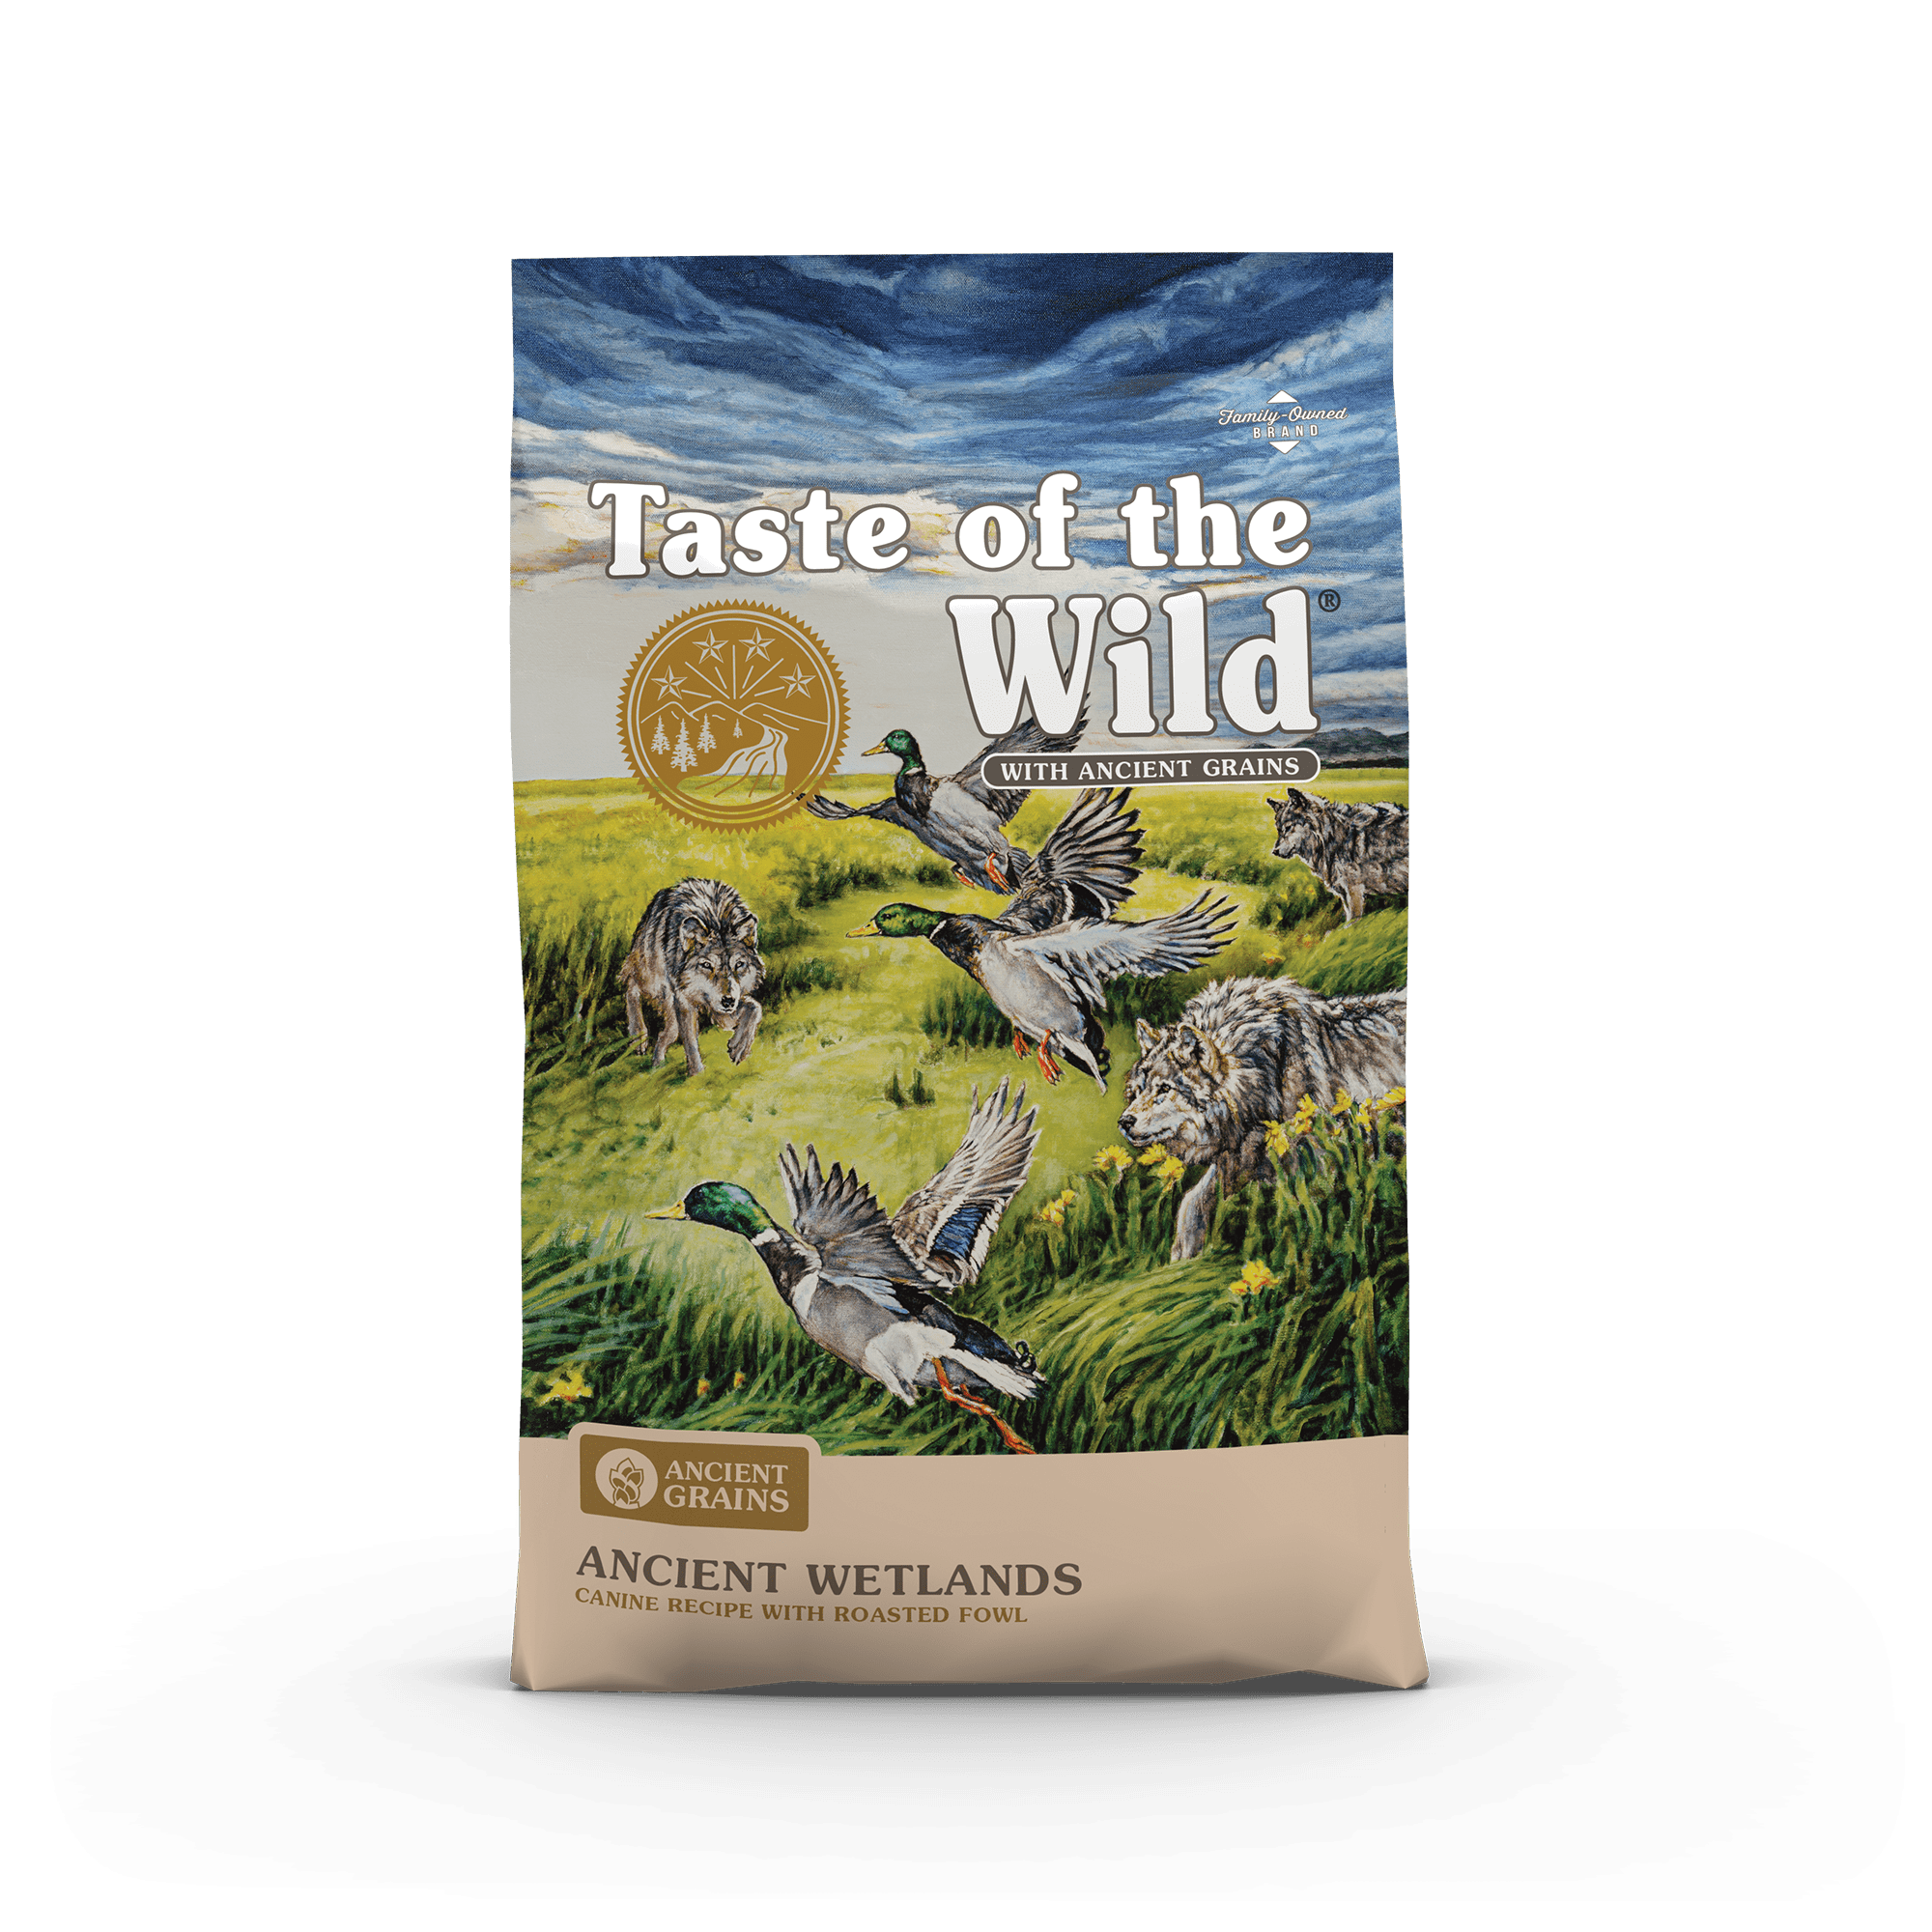 Taste of the Wild Taste of the Wild Ancient Wetlands Dry Dog Food